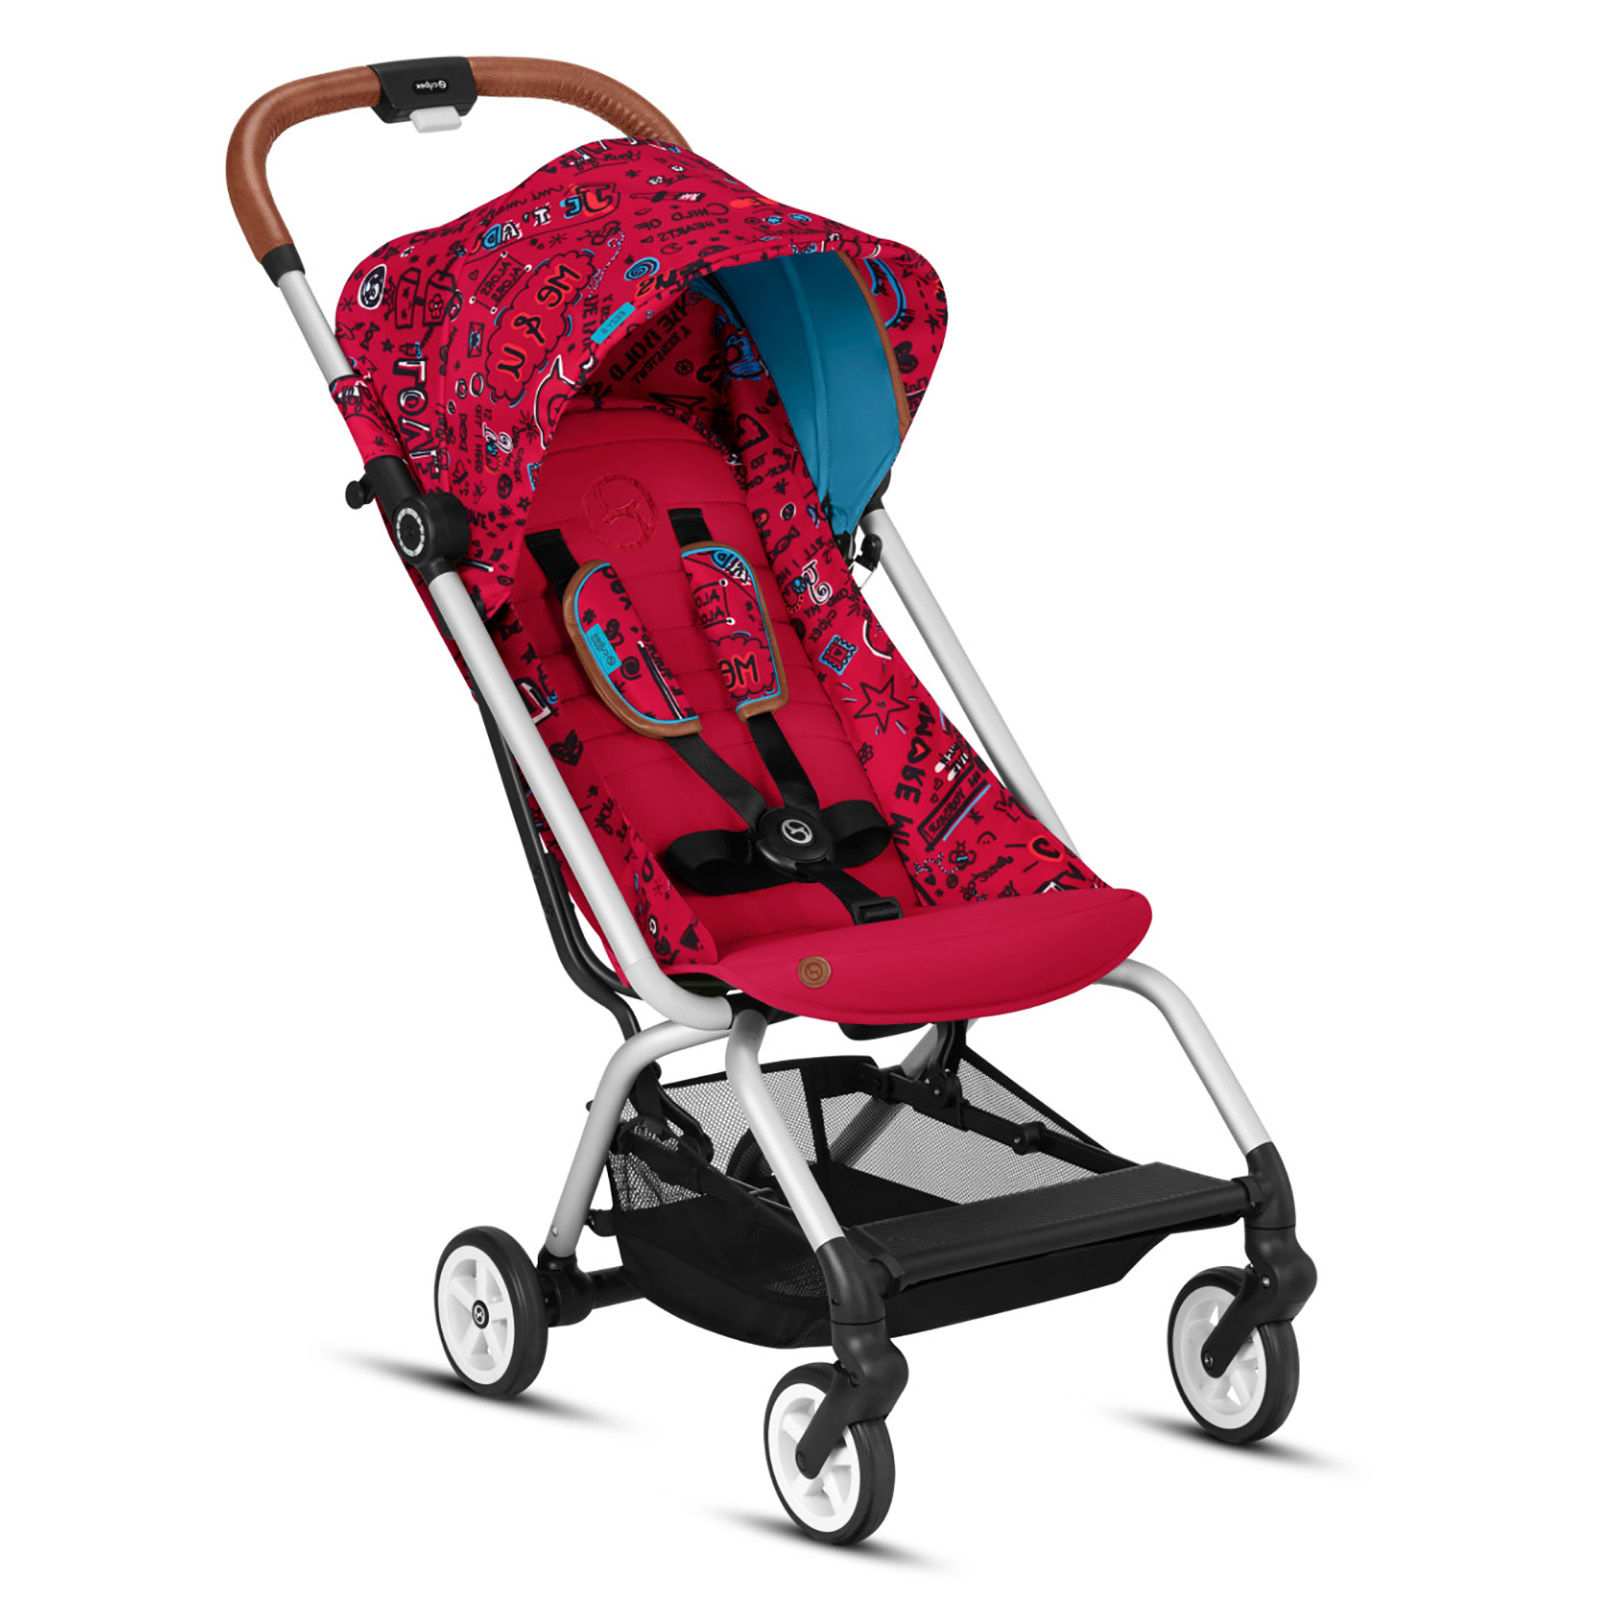 Cybex Stroller Eezy S Twist Cybex Eezy S Gold Fashion Edition Pushchair Stroller Love Red